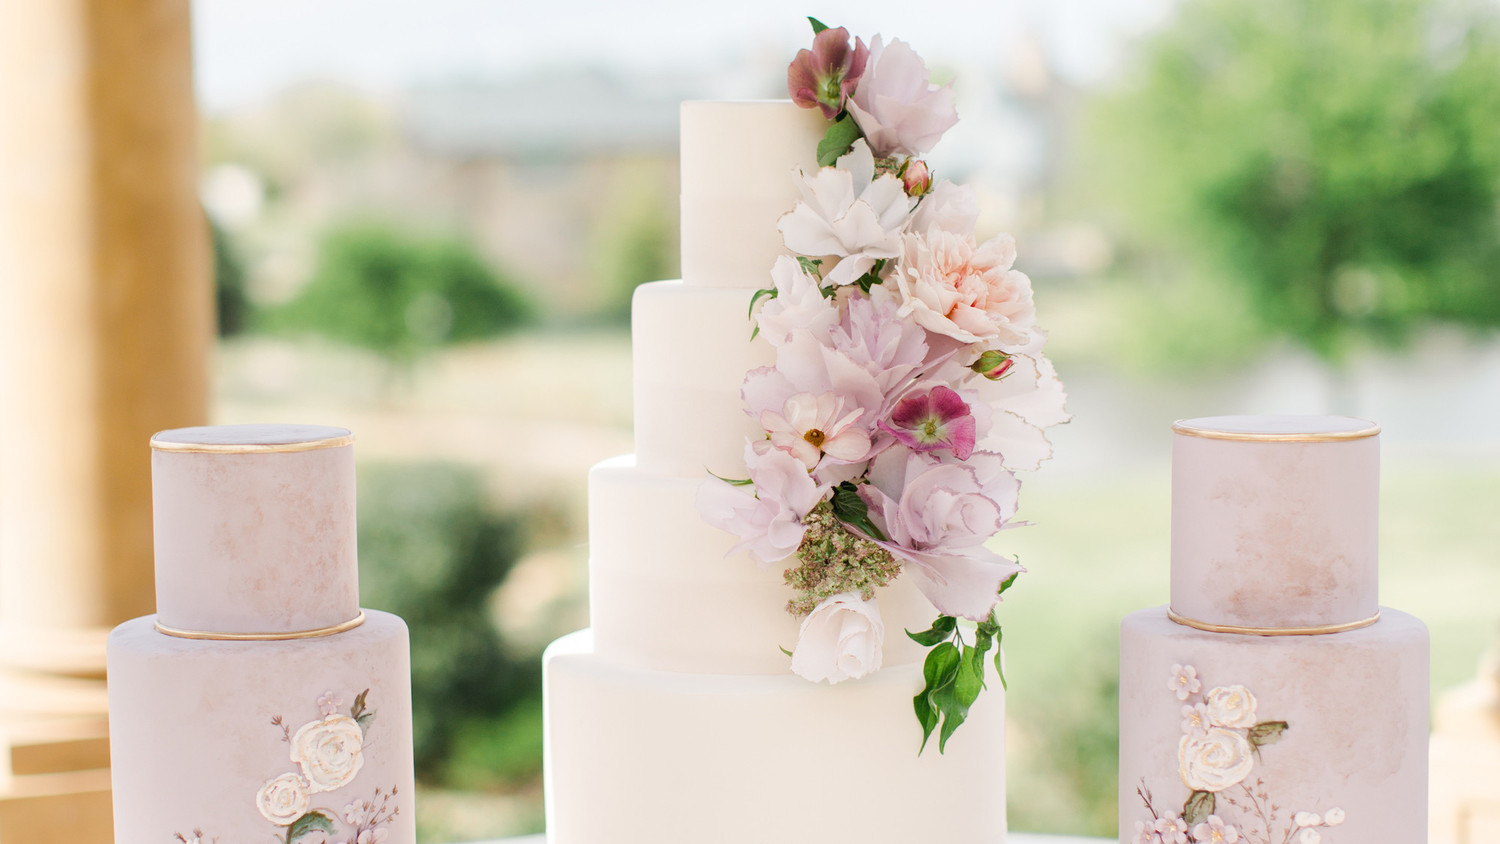 25 New Takes On Traditional Wedding Cake Flavors